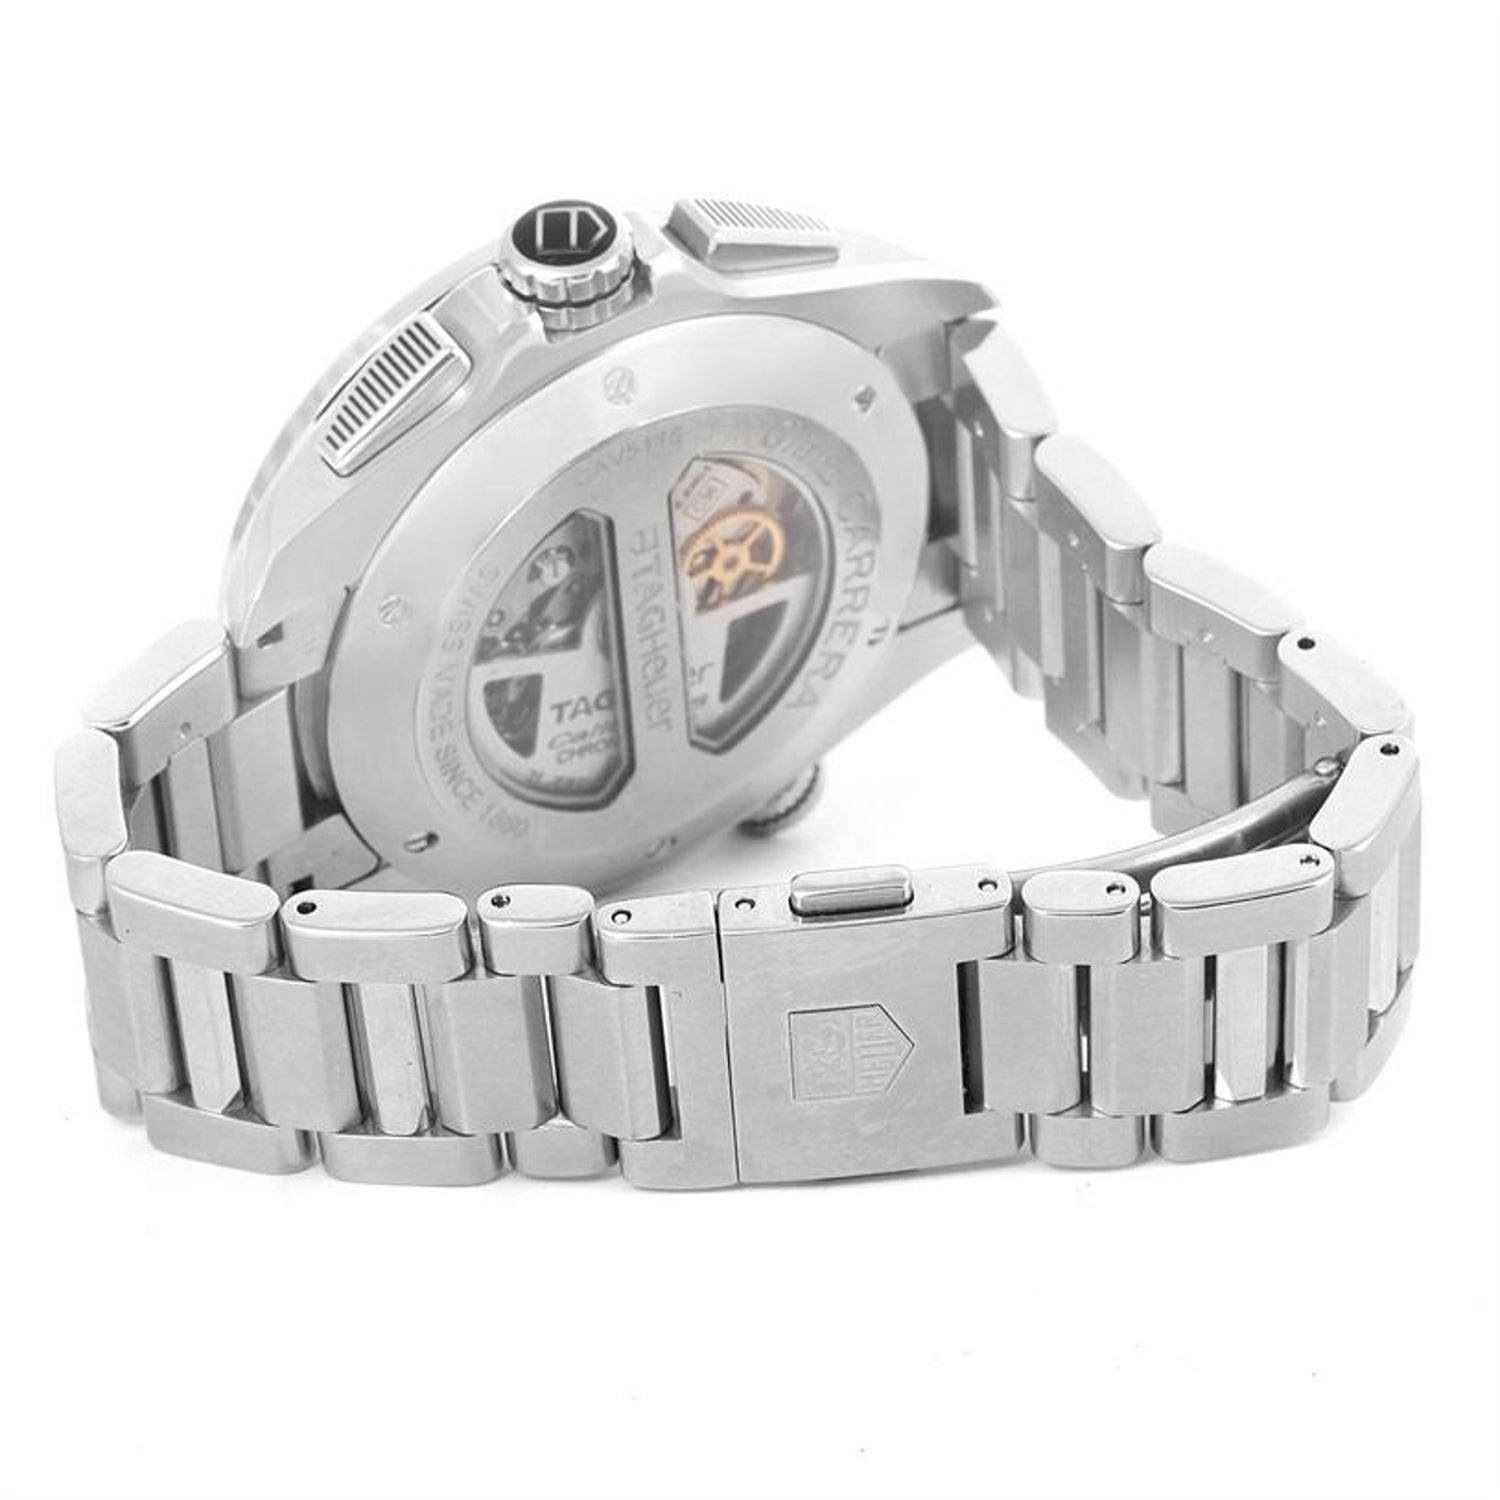 02ec6371ddd TAG Heuer Grand Carrera Calibre 36 RS Automatic Men's Watch CAV5115 For  Sale at 1stdibs